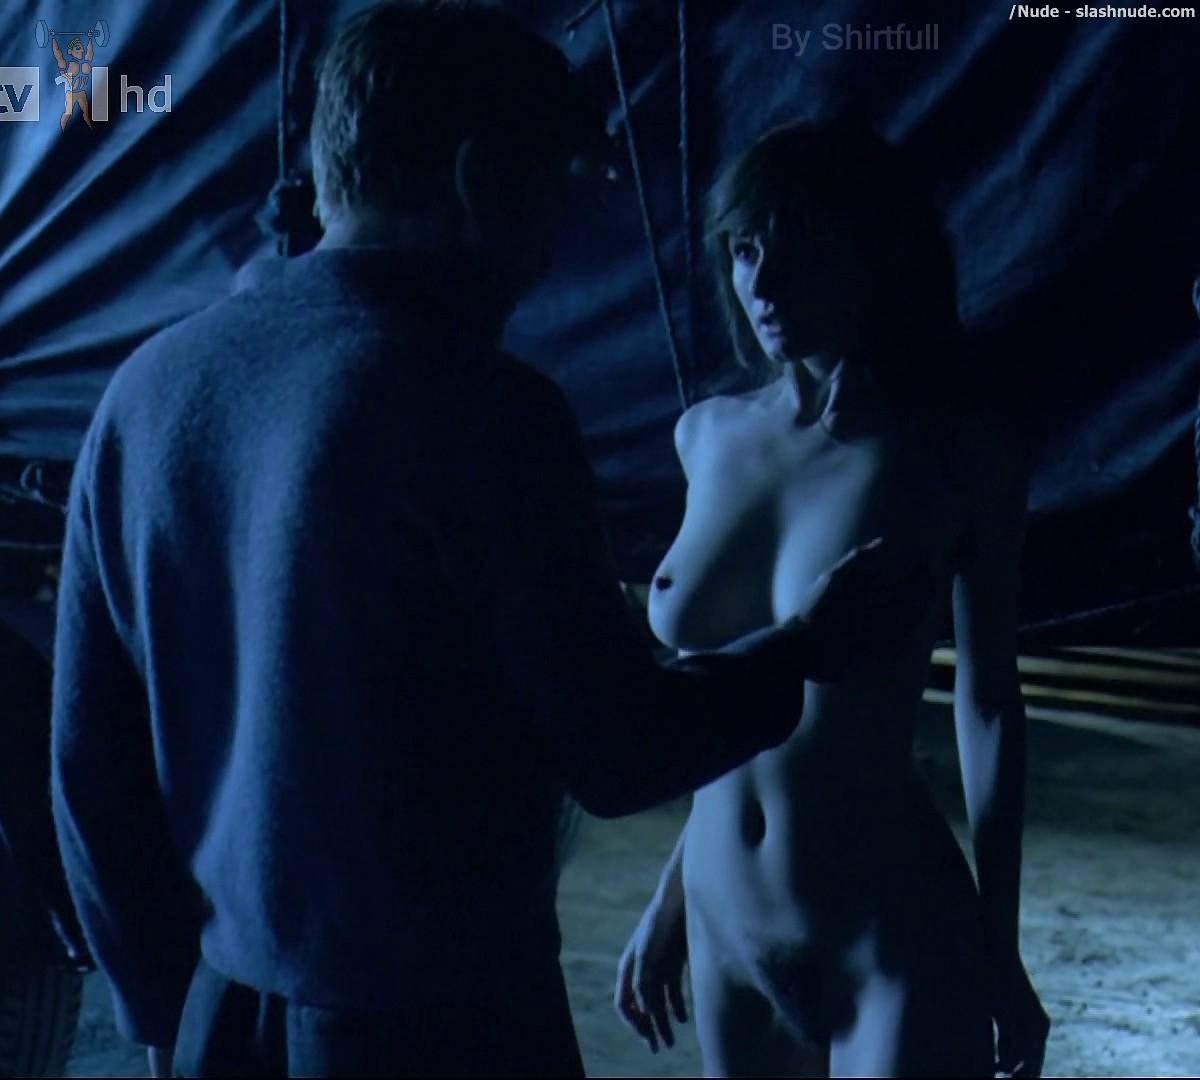 Understand you. Emily mortimer full frontal nudity think